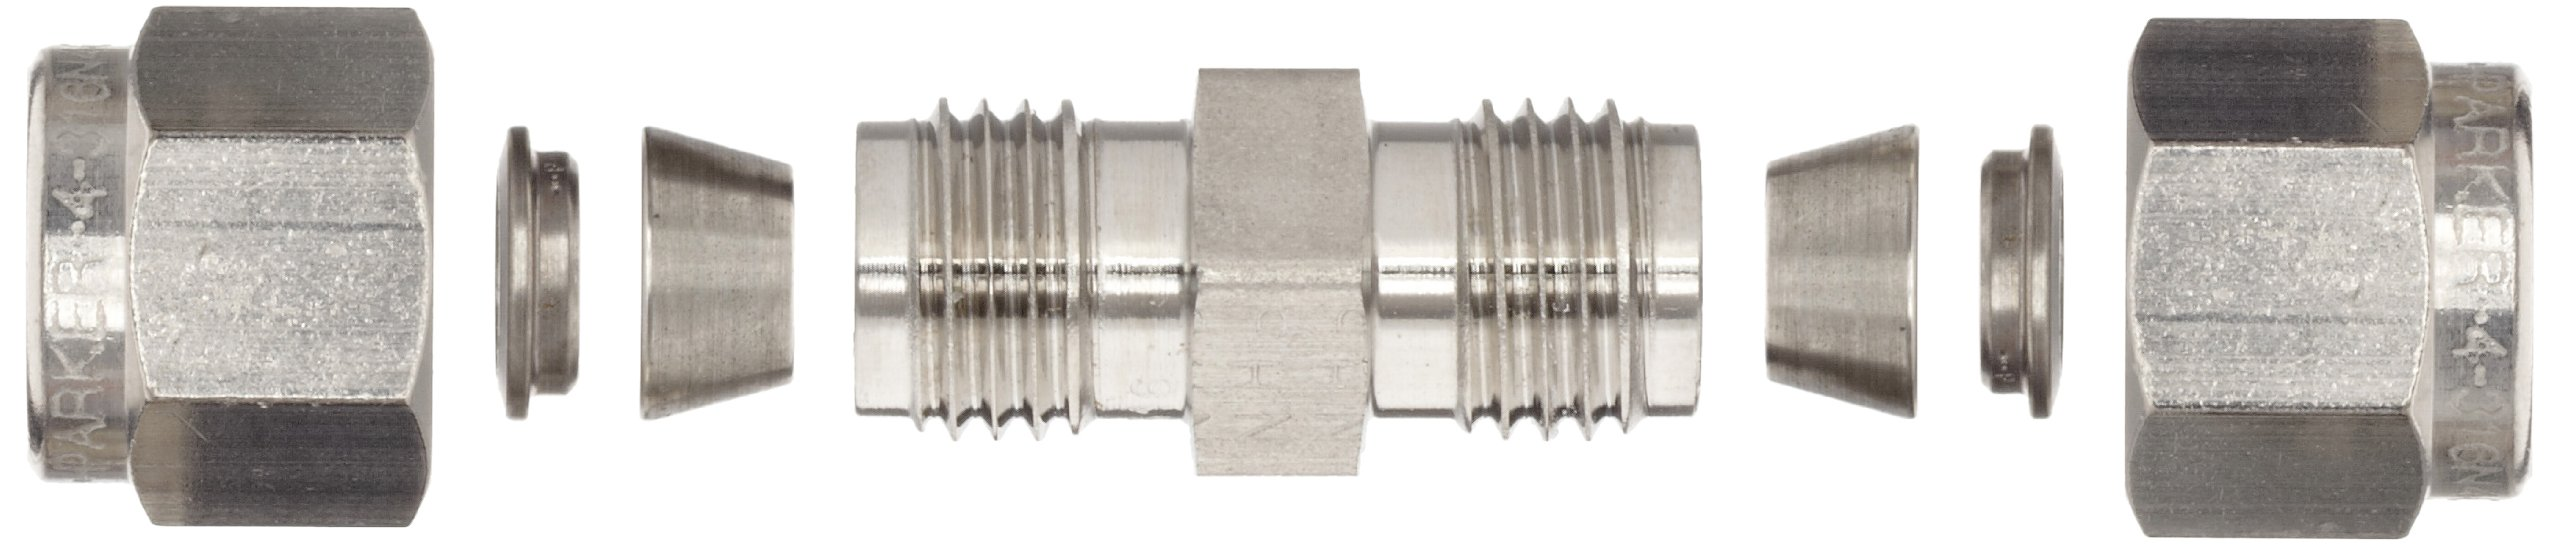 Parker 4SC4-316 316 Stainless Steel A-LOK Union 1/4'' Compression Fitting 1/4'' Compression by Parker (Image #4)